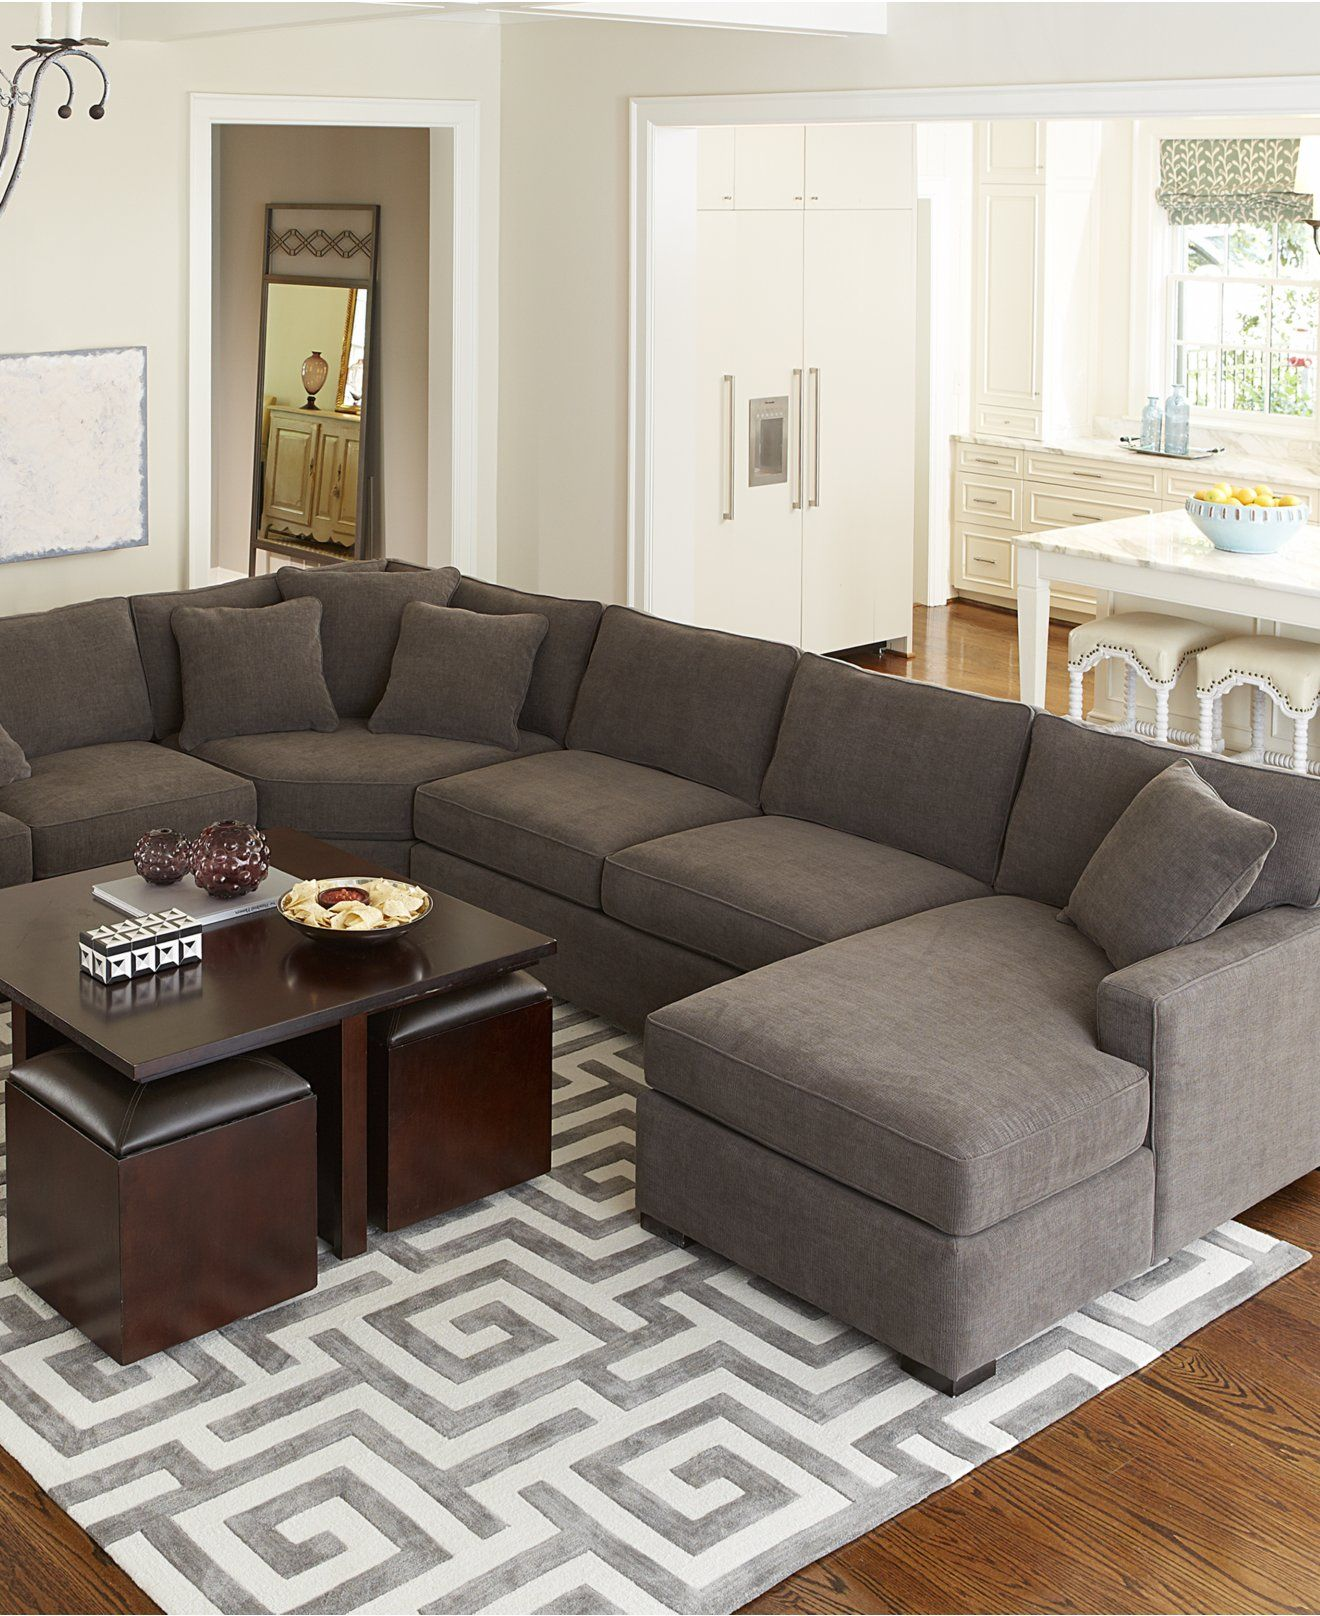 Peckham Sectional Sofa India: Radley Fabric Sectional Living Room Furniture Sets